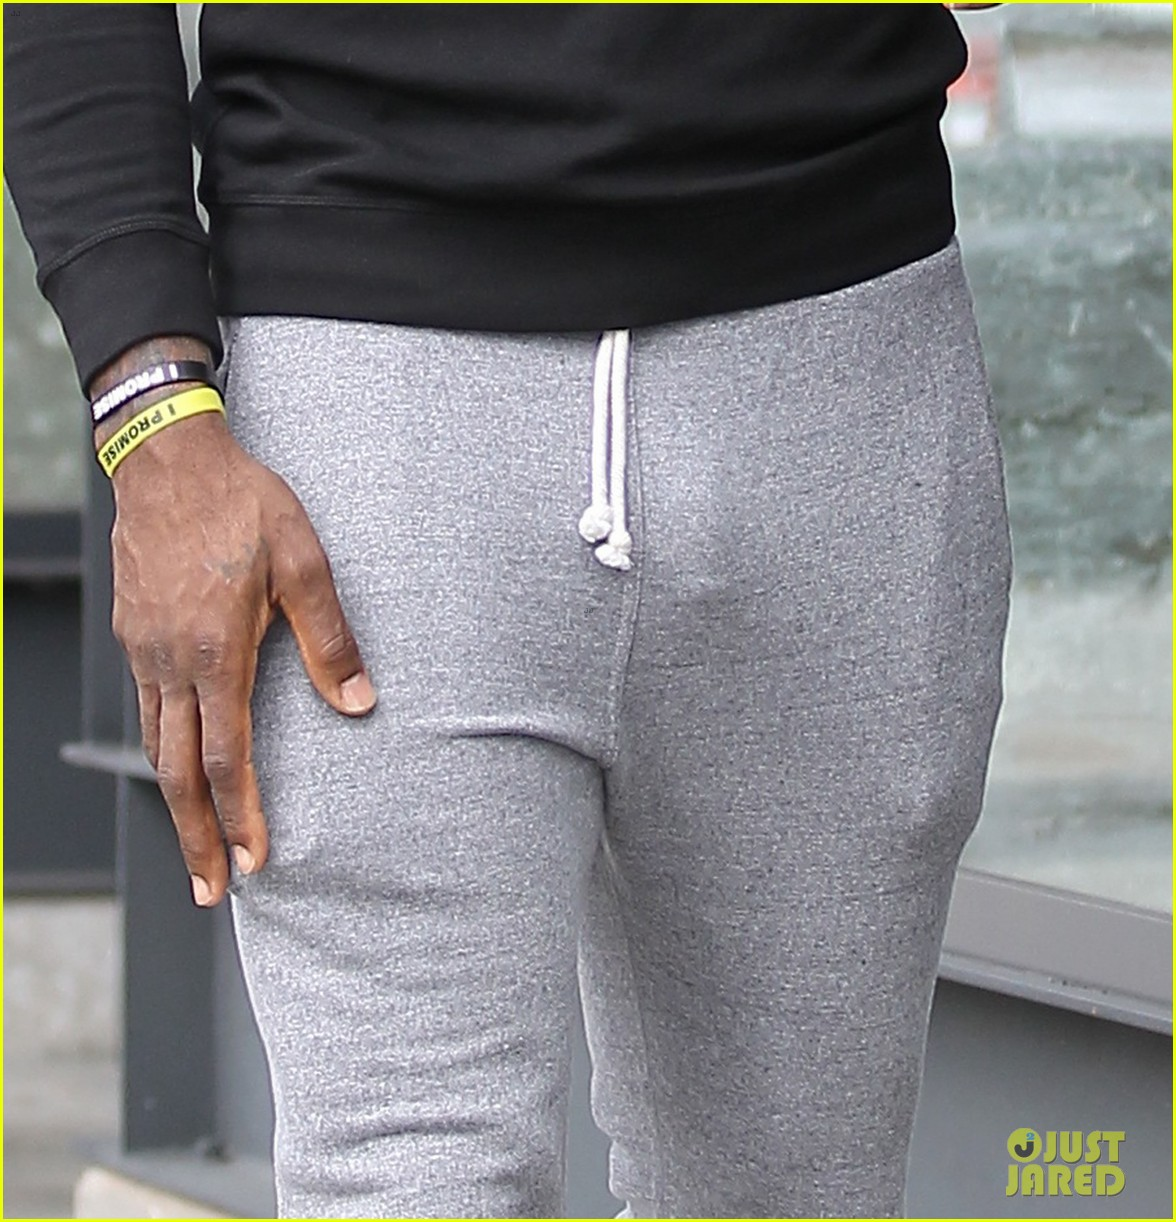 Too-large bulge in crotch leads to airport arrest - SFGate